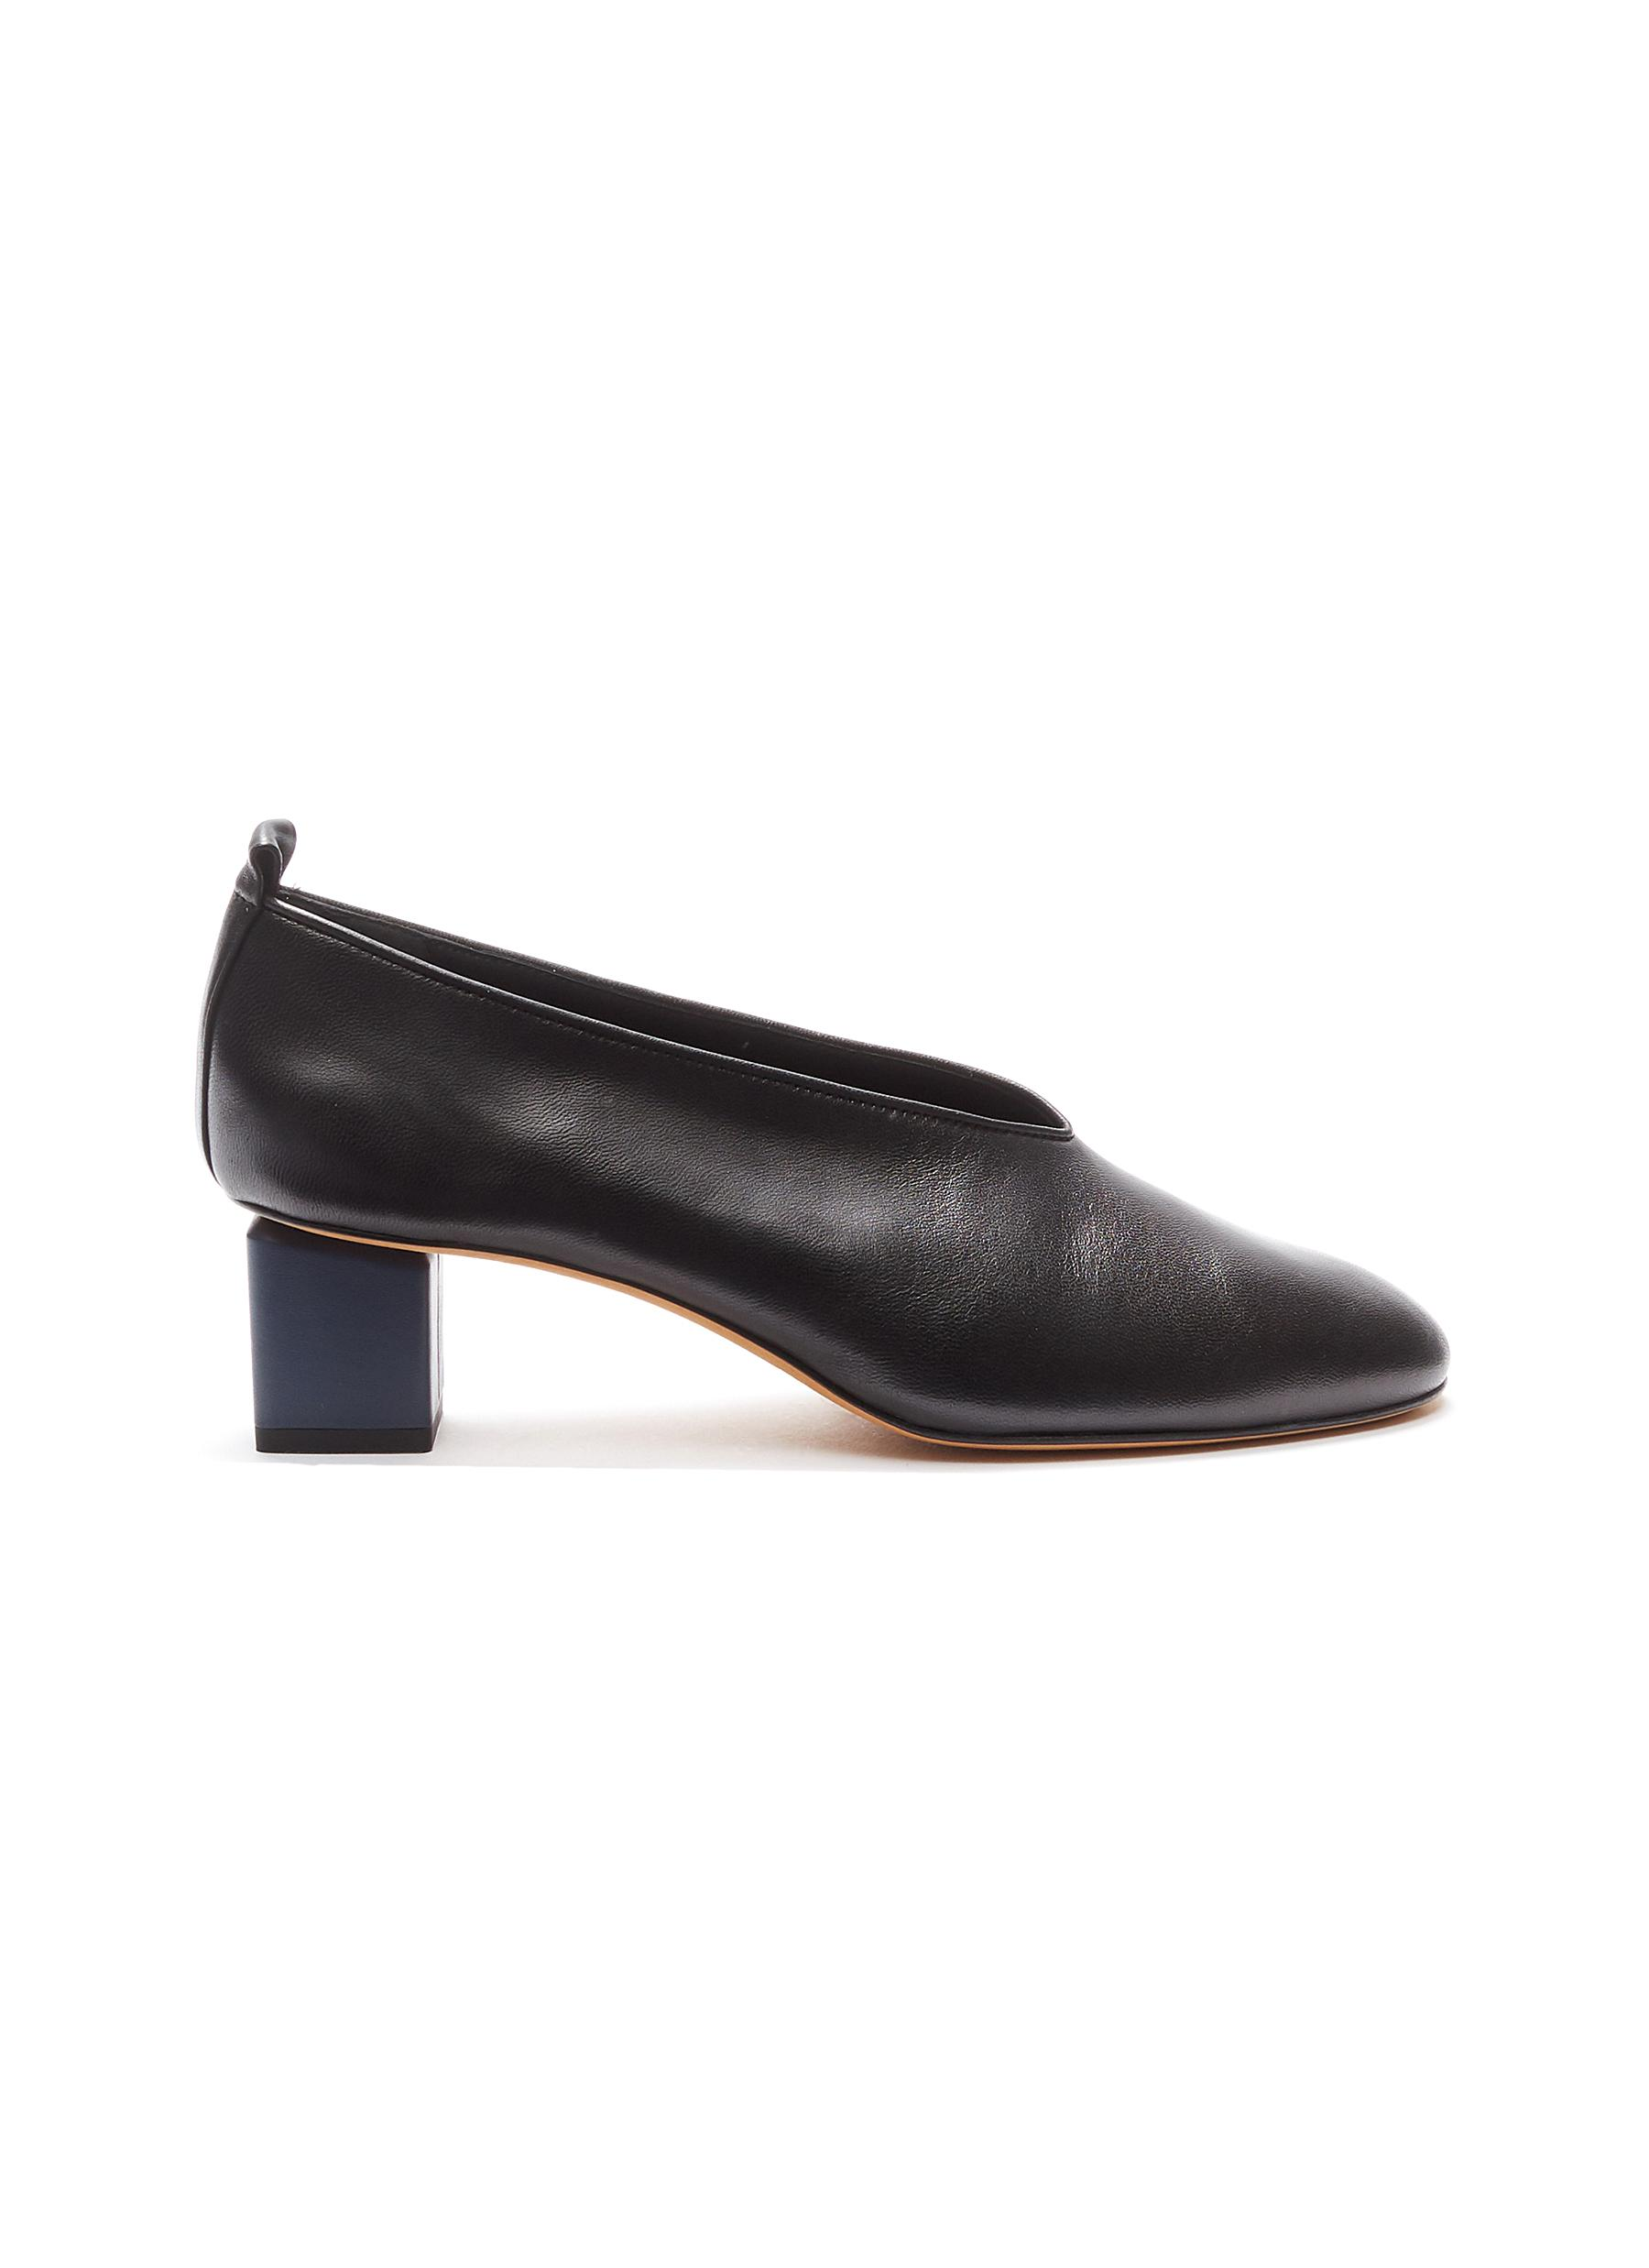 Mildred cube heel choked-up leather pumps by Gray Matters